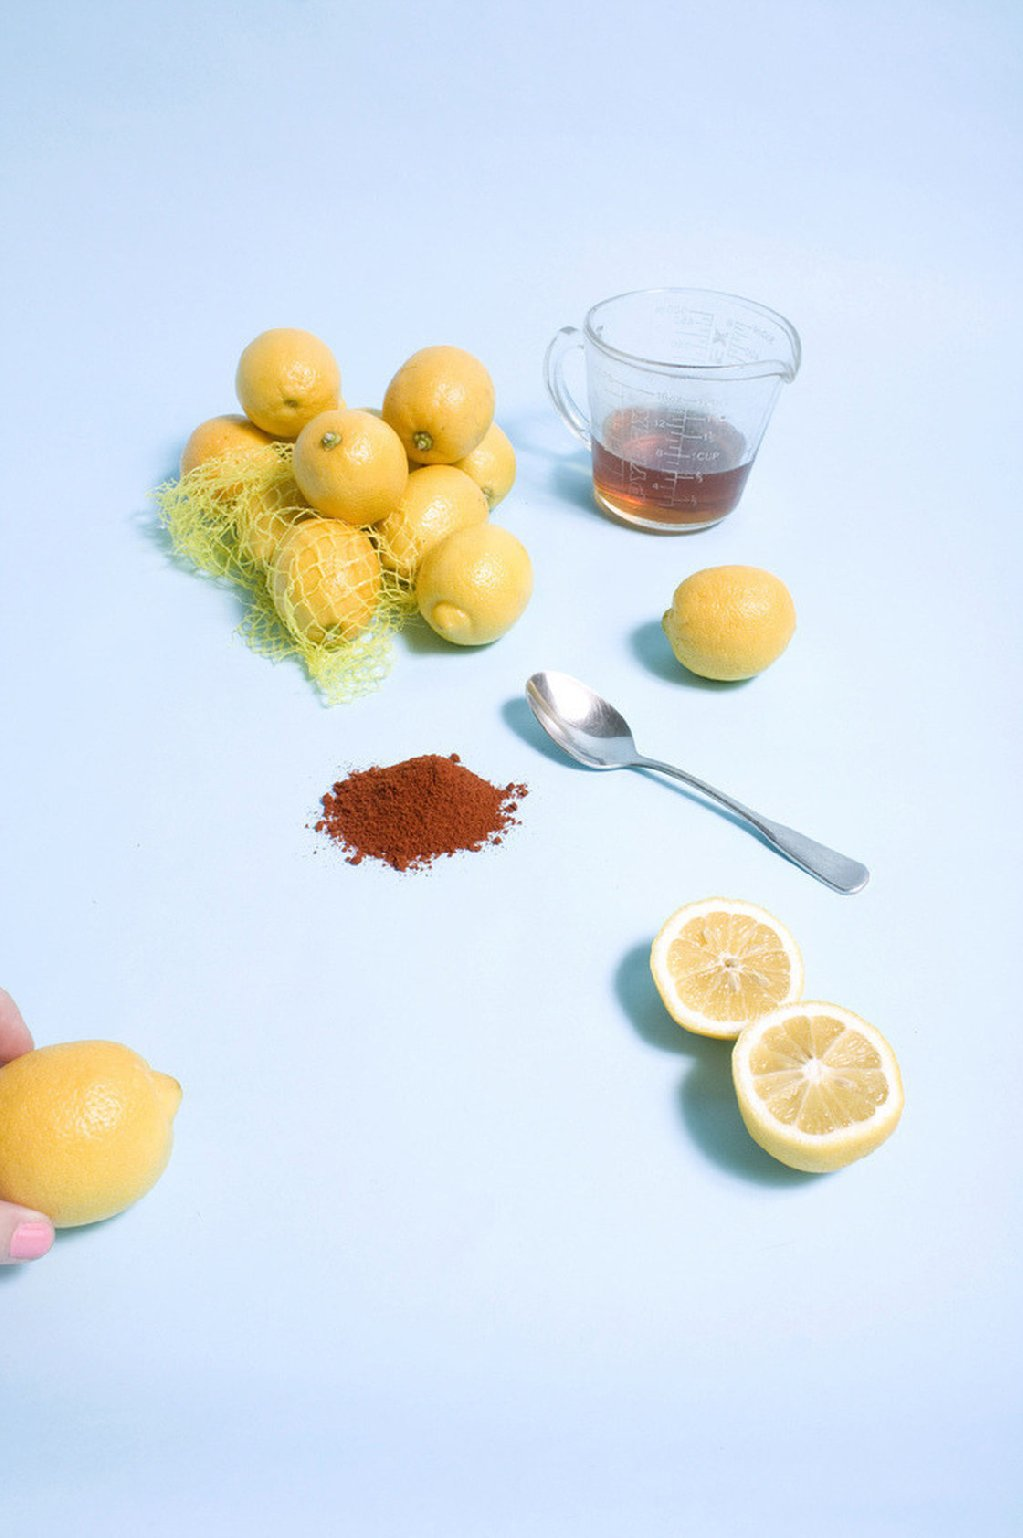 "<strong>The Master Cleanse: </strong>Adherents are required to avoid any food and just drink a concoction of water, lemon juice, maple syrup and cayenne pepper to ""detoxify"" their bodies. As Piper in <em>Orange Is The New Black</em><em> </em><a href=""http://www.vulture.com/2013/07/orange-is-the-new-black-recap-season-1-episode-2.html"">proves</a>, it's tough to make it through on this meager meal. Photo: Stephanie Gonot/Courtesy of the photographer"